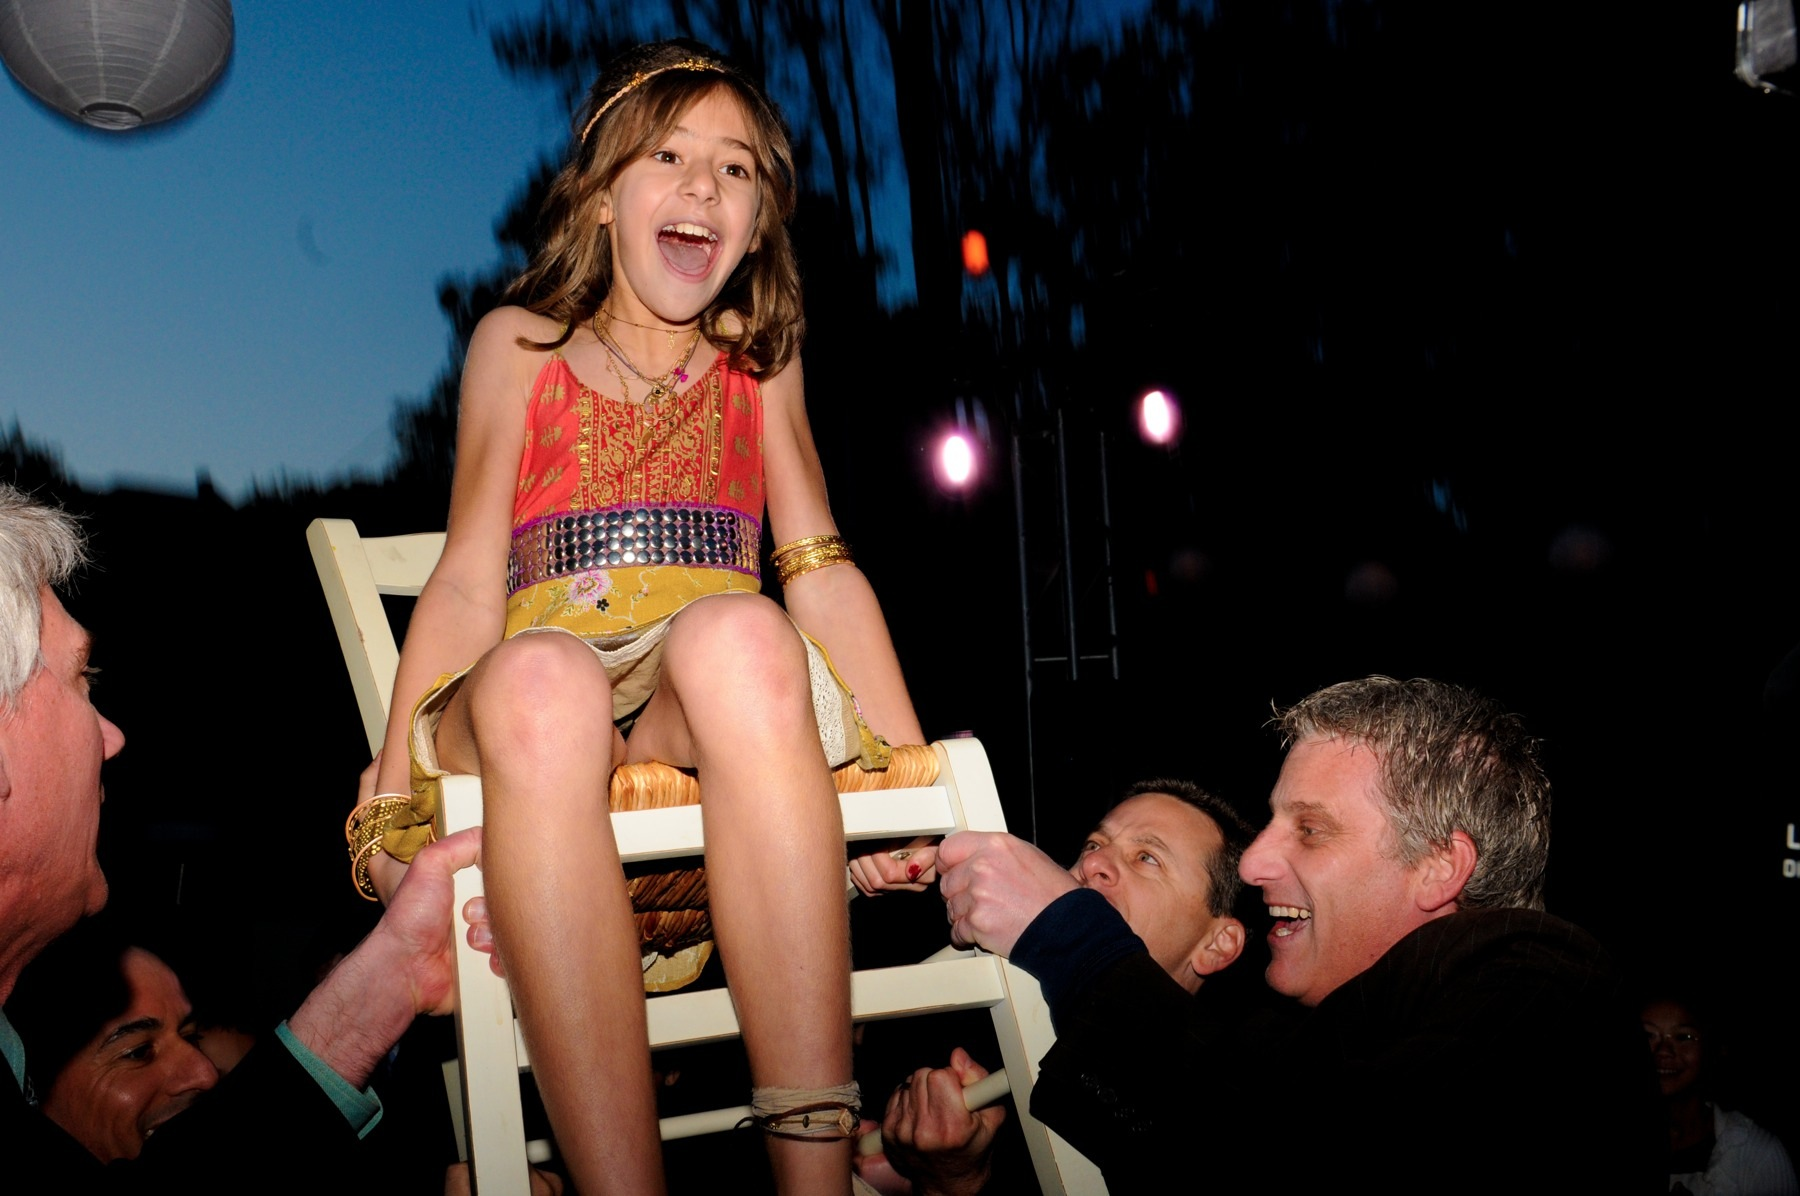 bat_mitzvah_bar_mitzvah_san_francisco_bay_area_photographer_party_photography_104